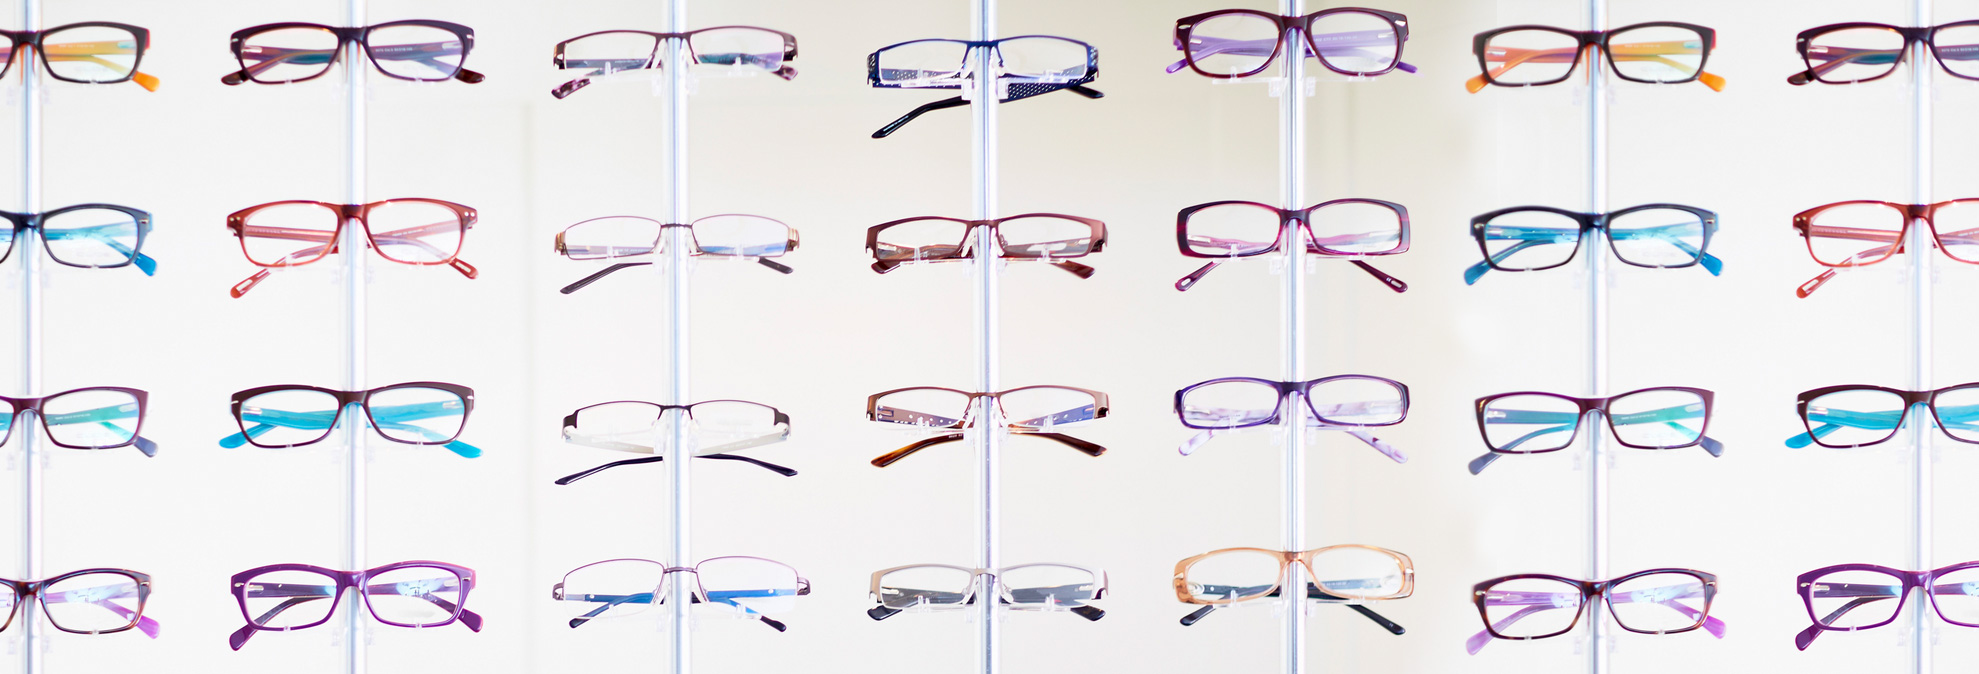 8 great ways to save on the cost of eyeglasses